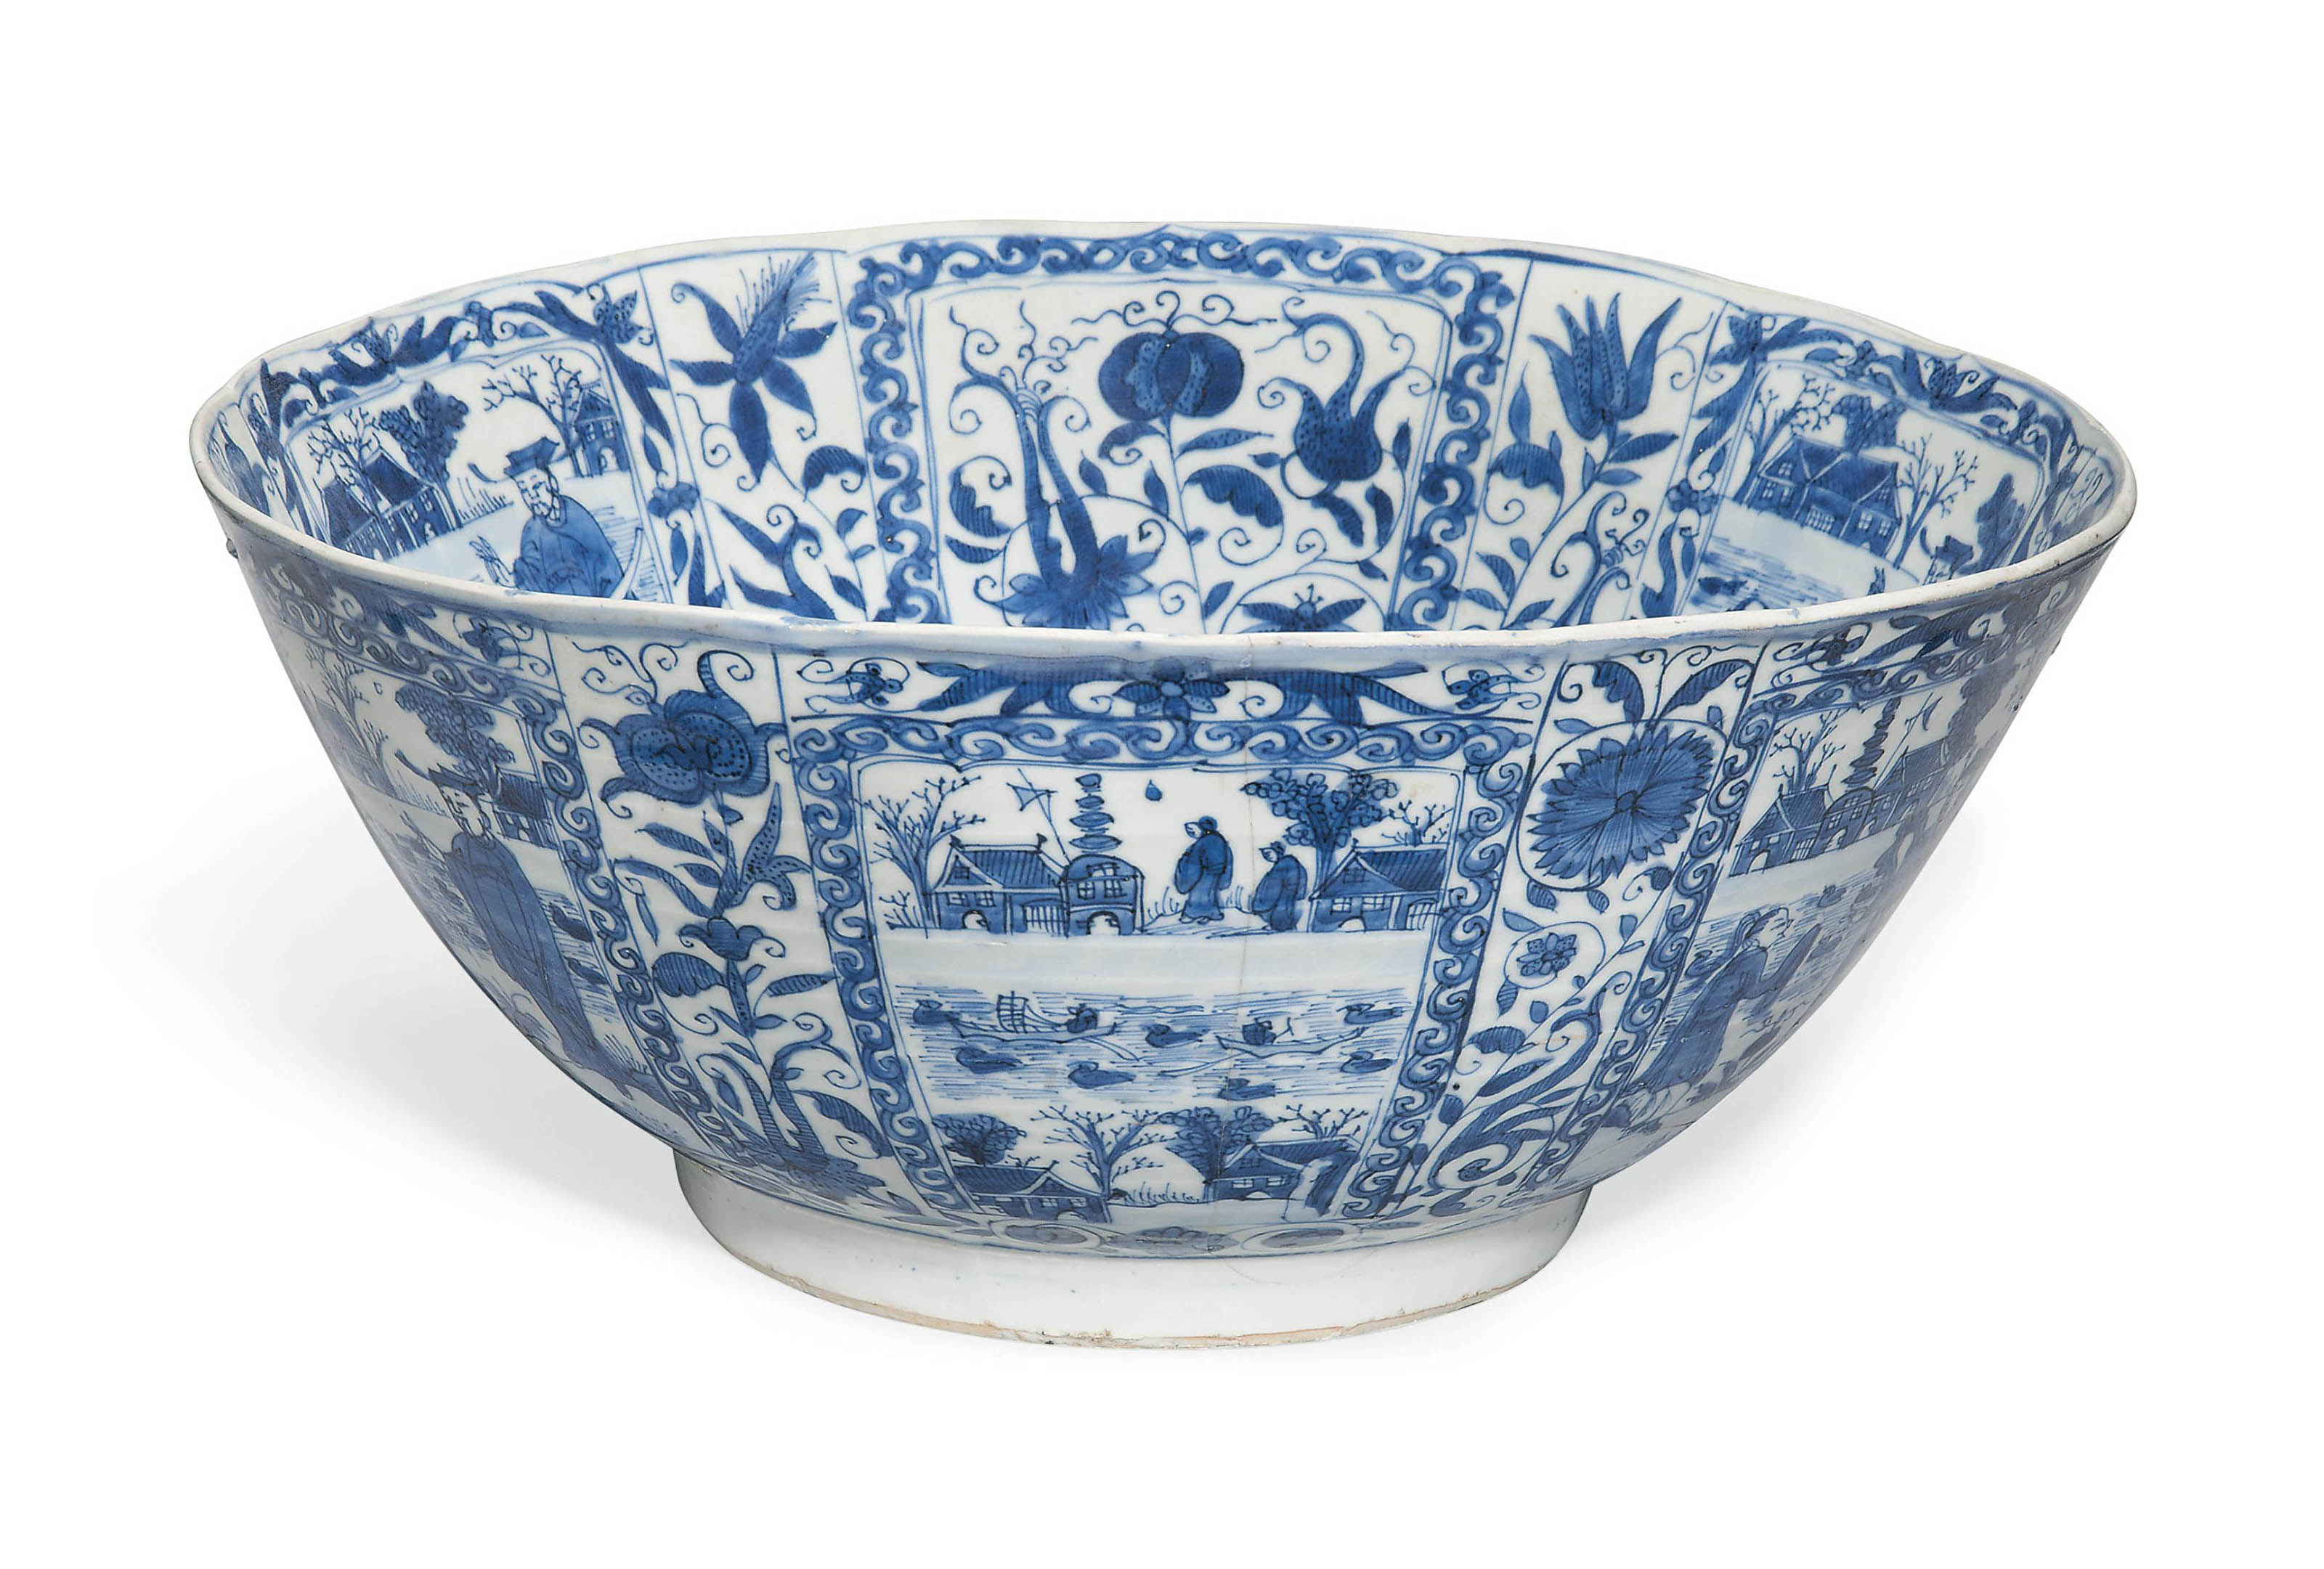 A LARGE CHINESE BLUE AND WHITE 'KRAAK PORSELEIN' BOWL